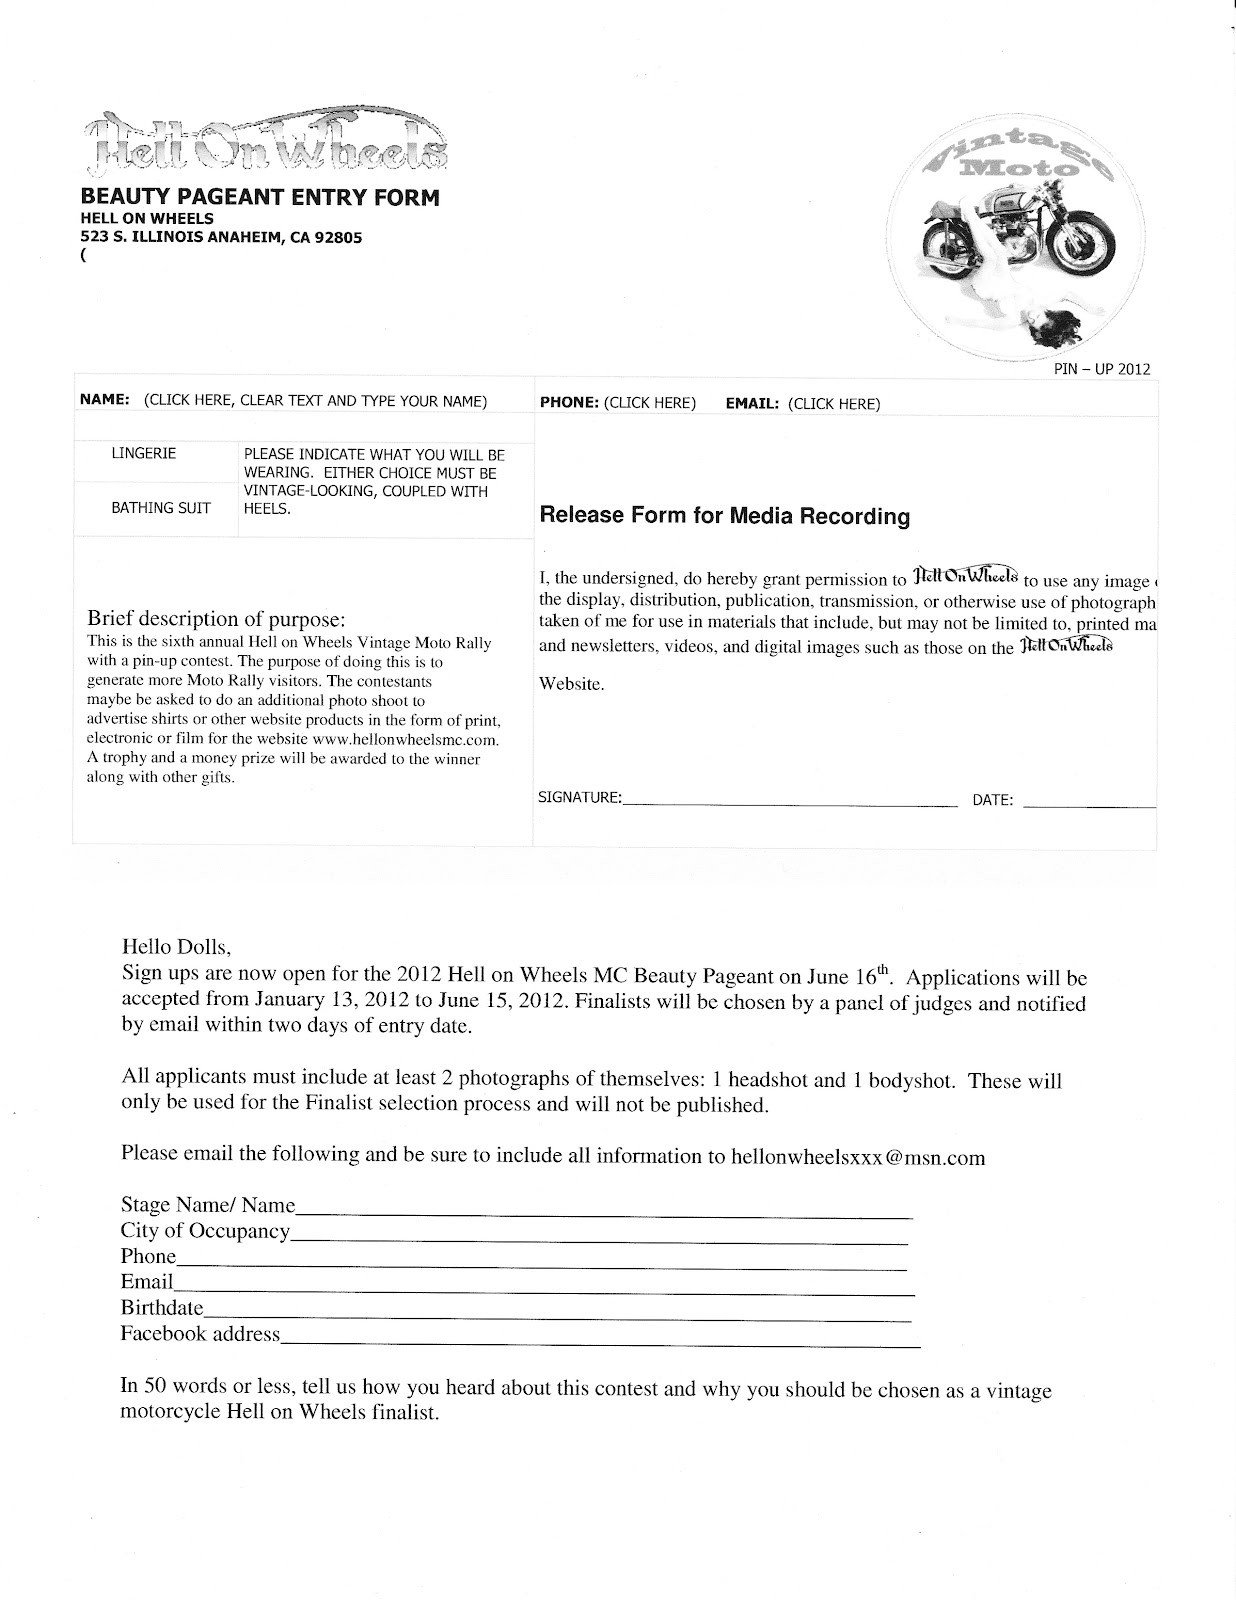 Pageant Entry form Template Hell On Wheels Mc Blog 2012 Pinup Pageant Entry form